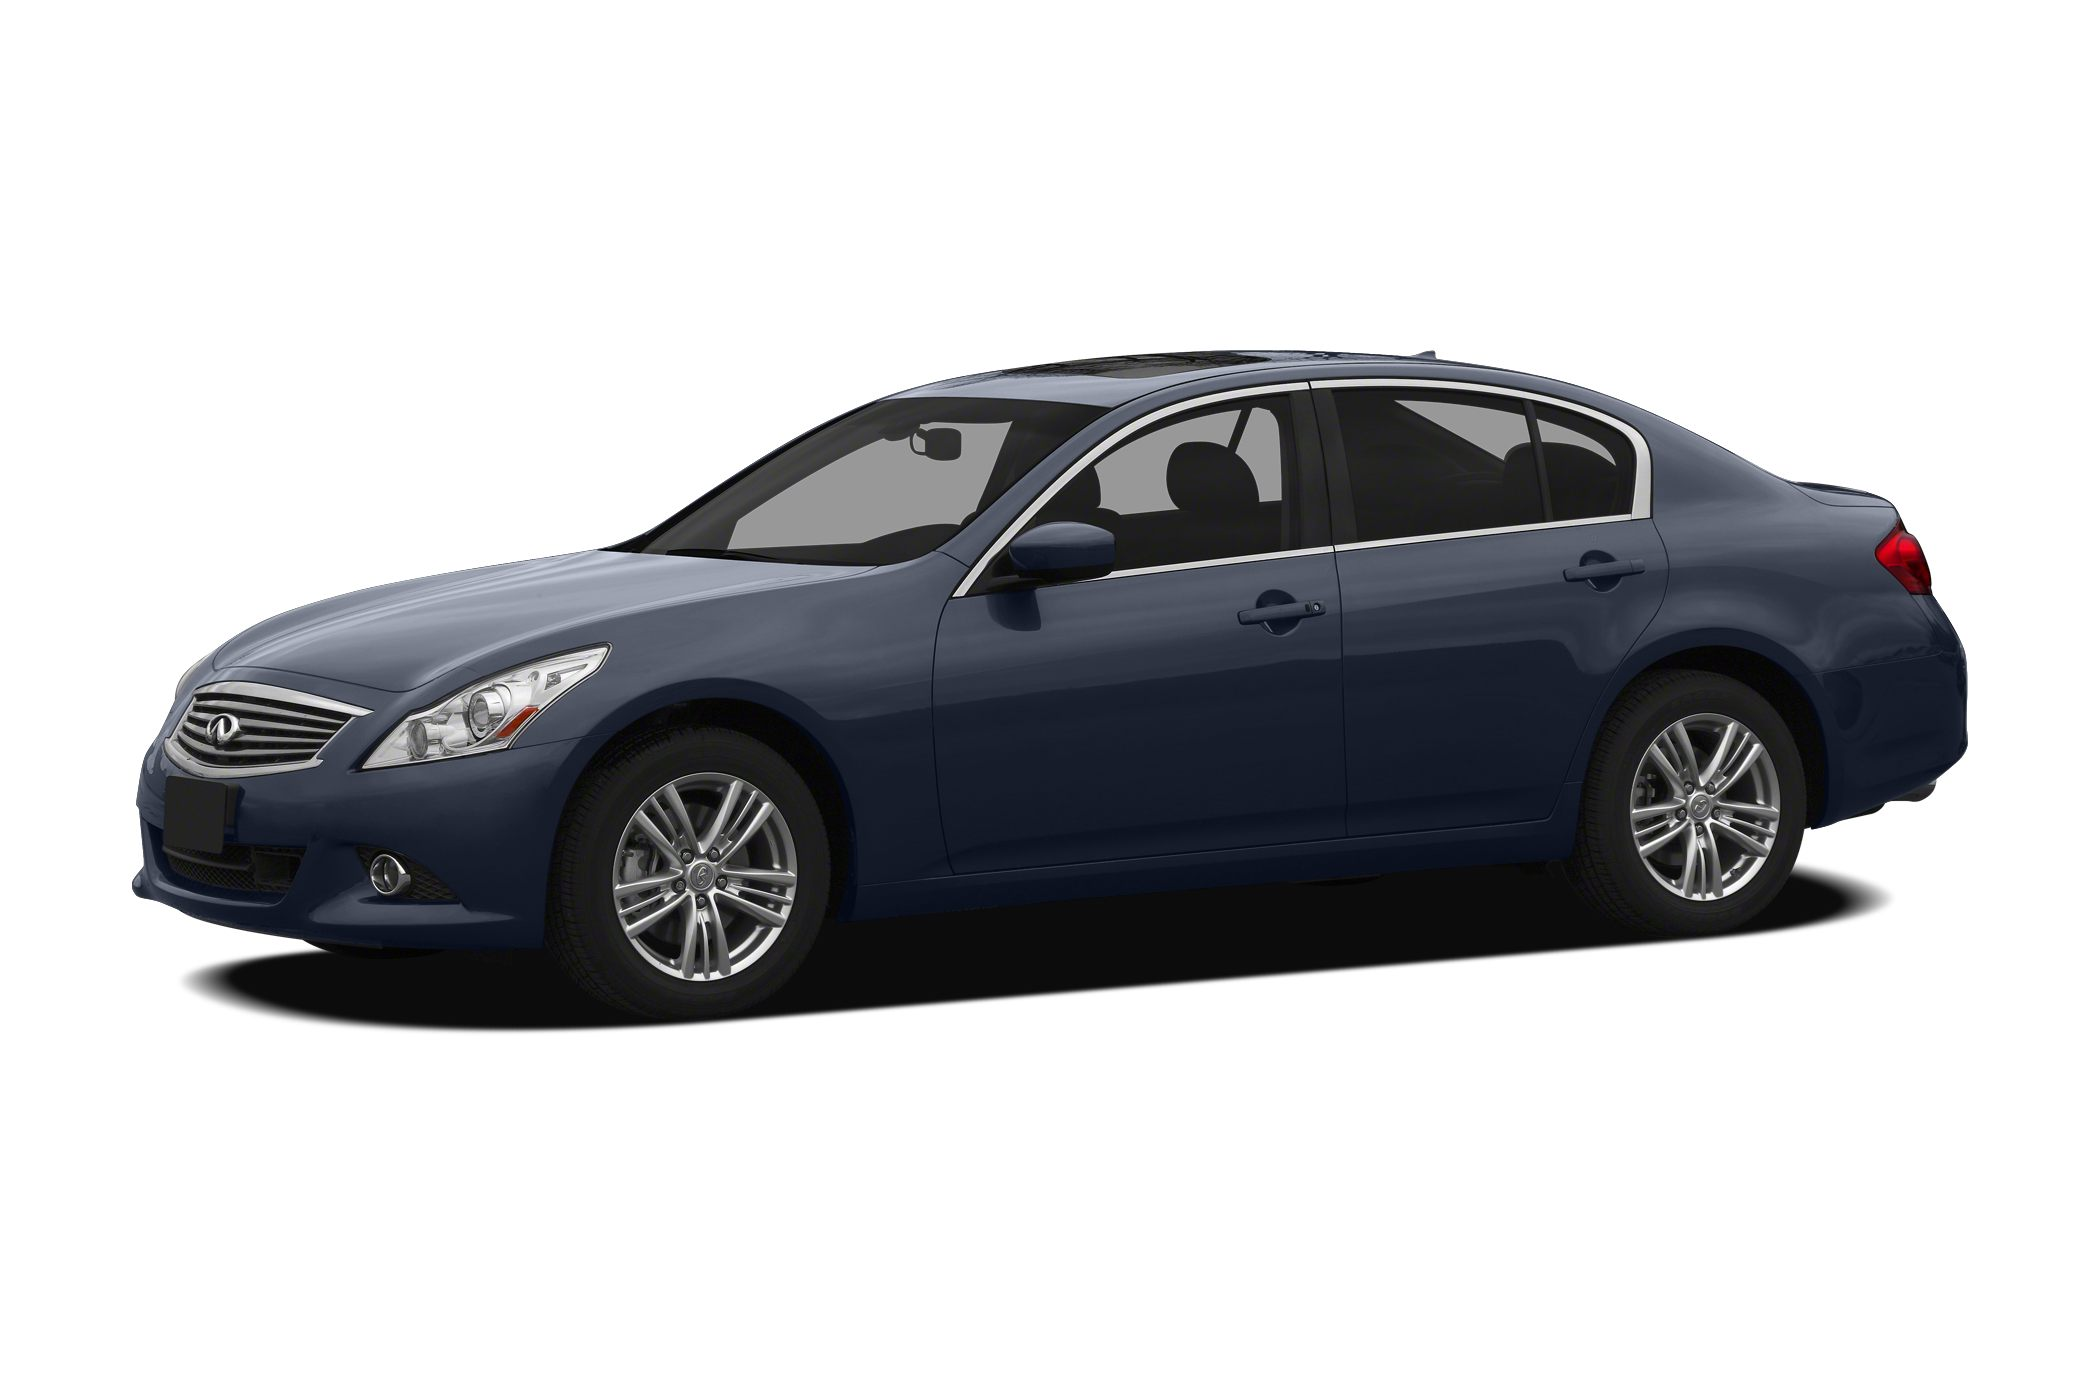 2011 Infiniti G37 X Coupe for sale in Lawrence for $0 with 37,759 miles